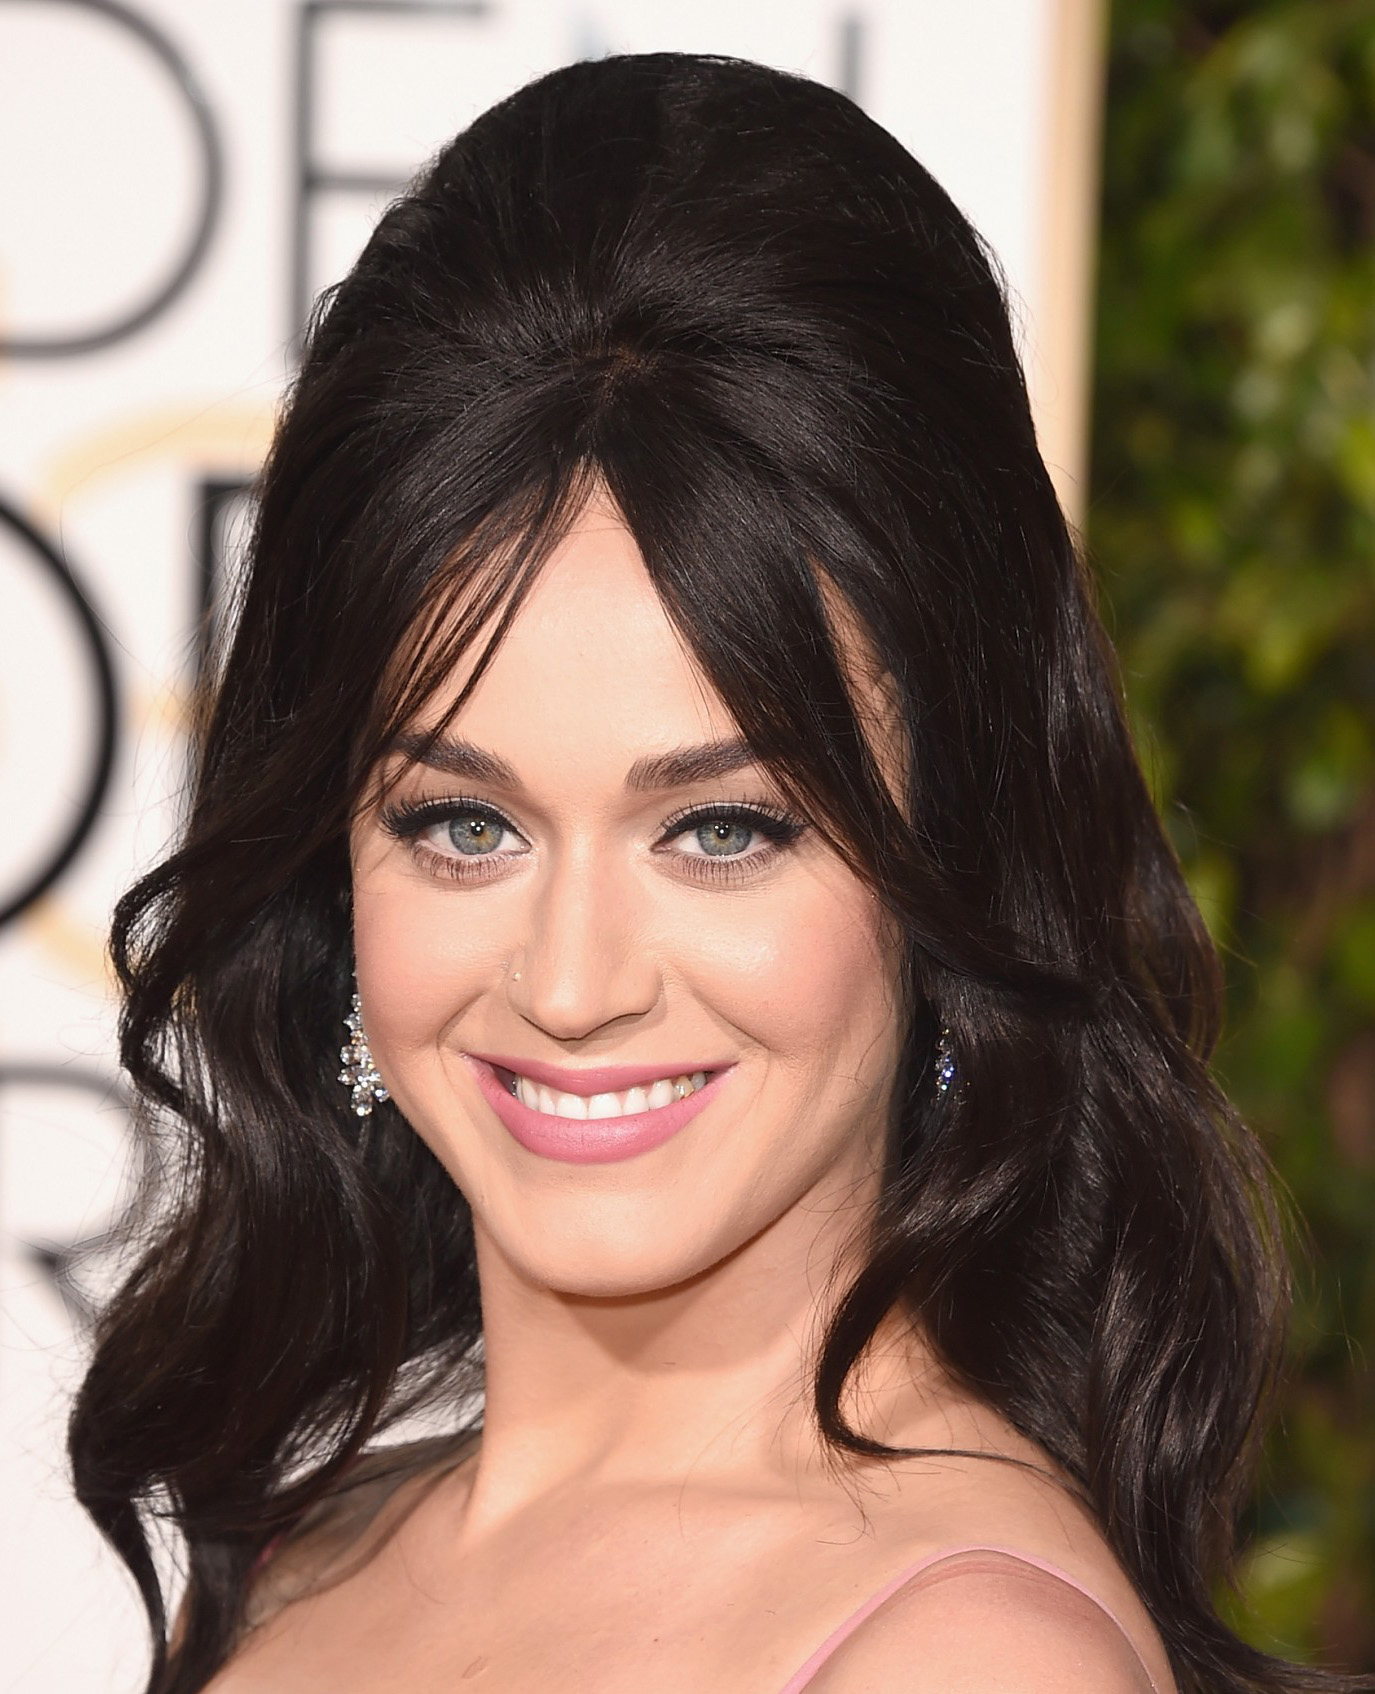 60s hairstyle Katy Perry